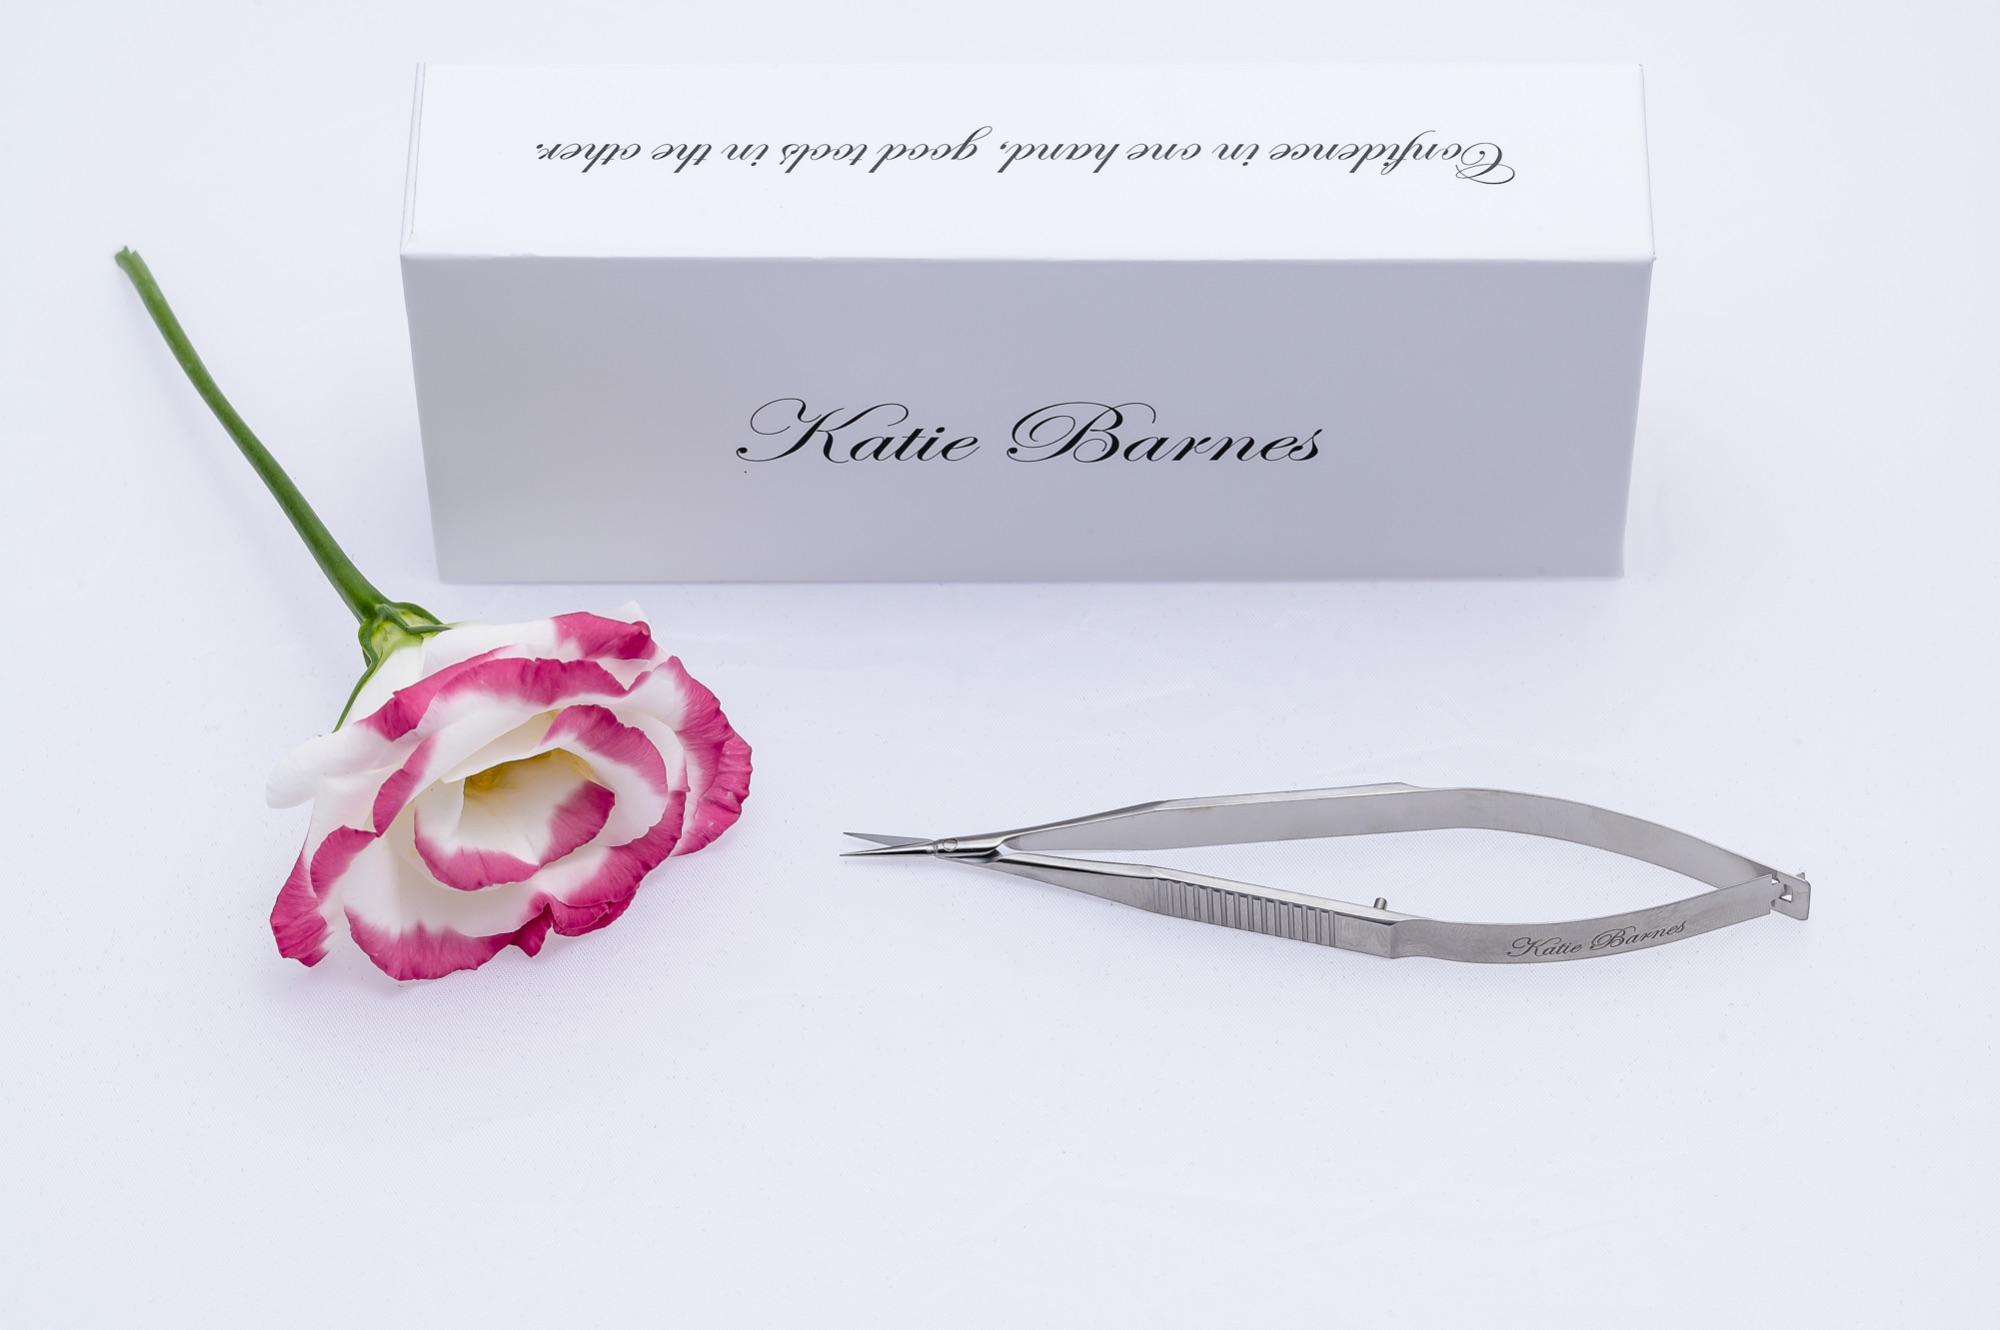 KB Straight Form Tailoring Scissors®